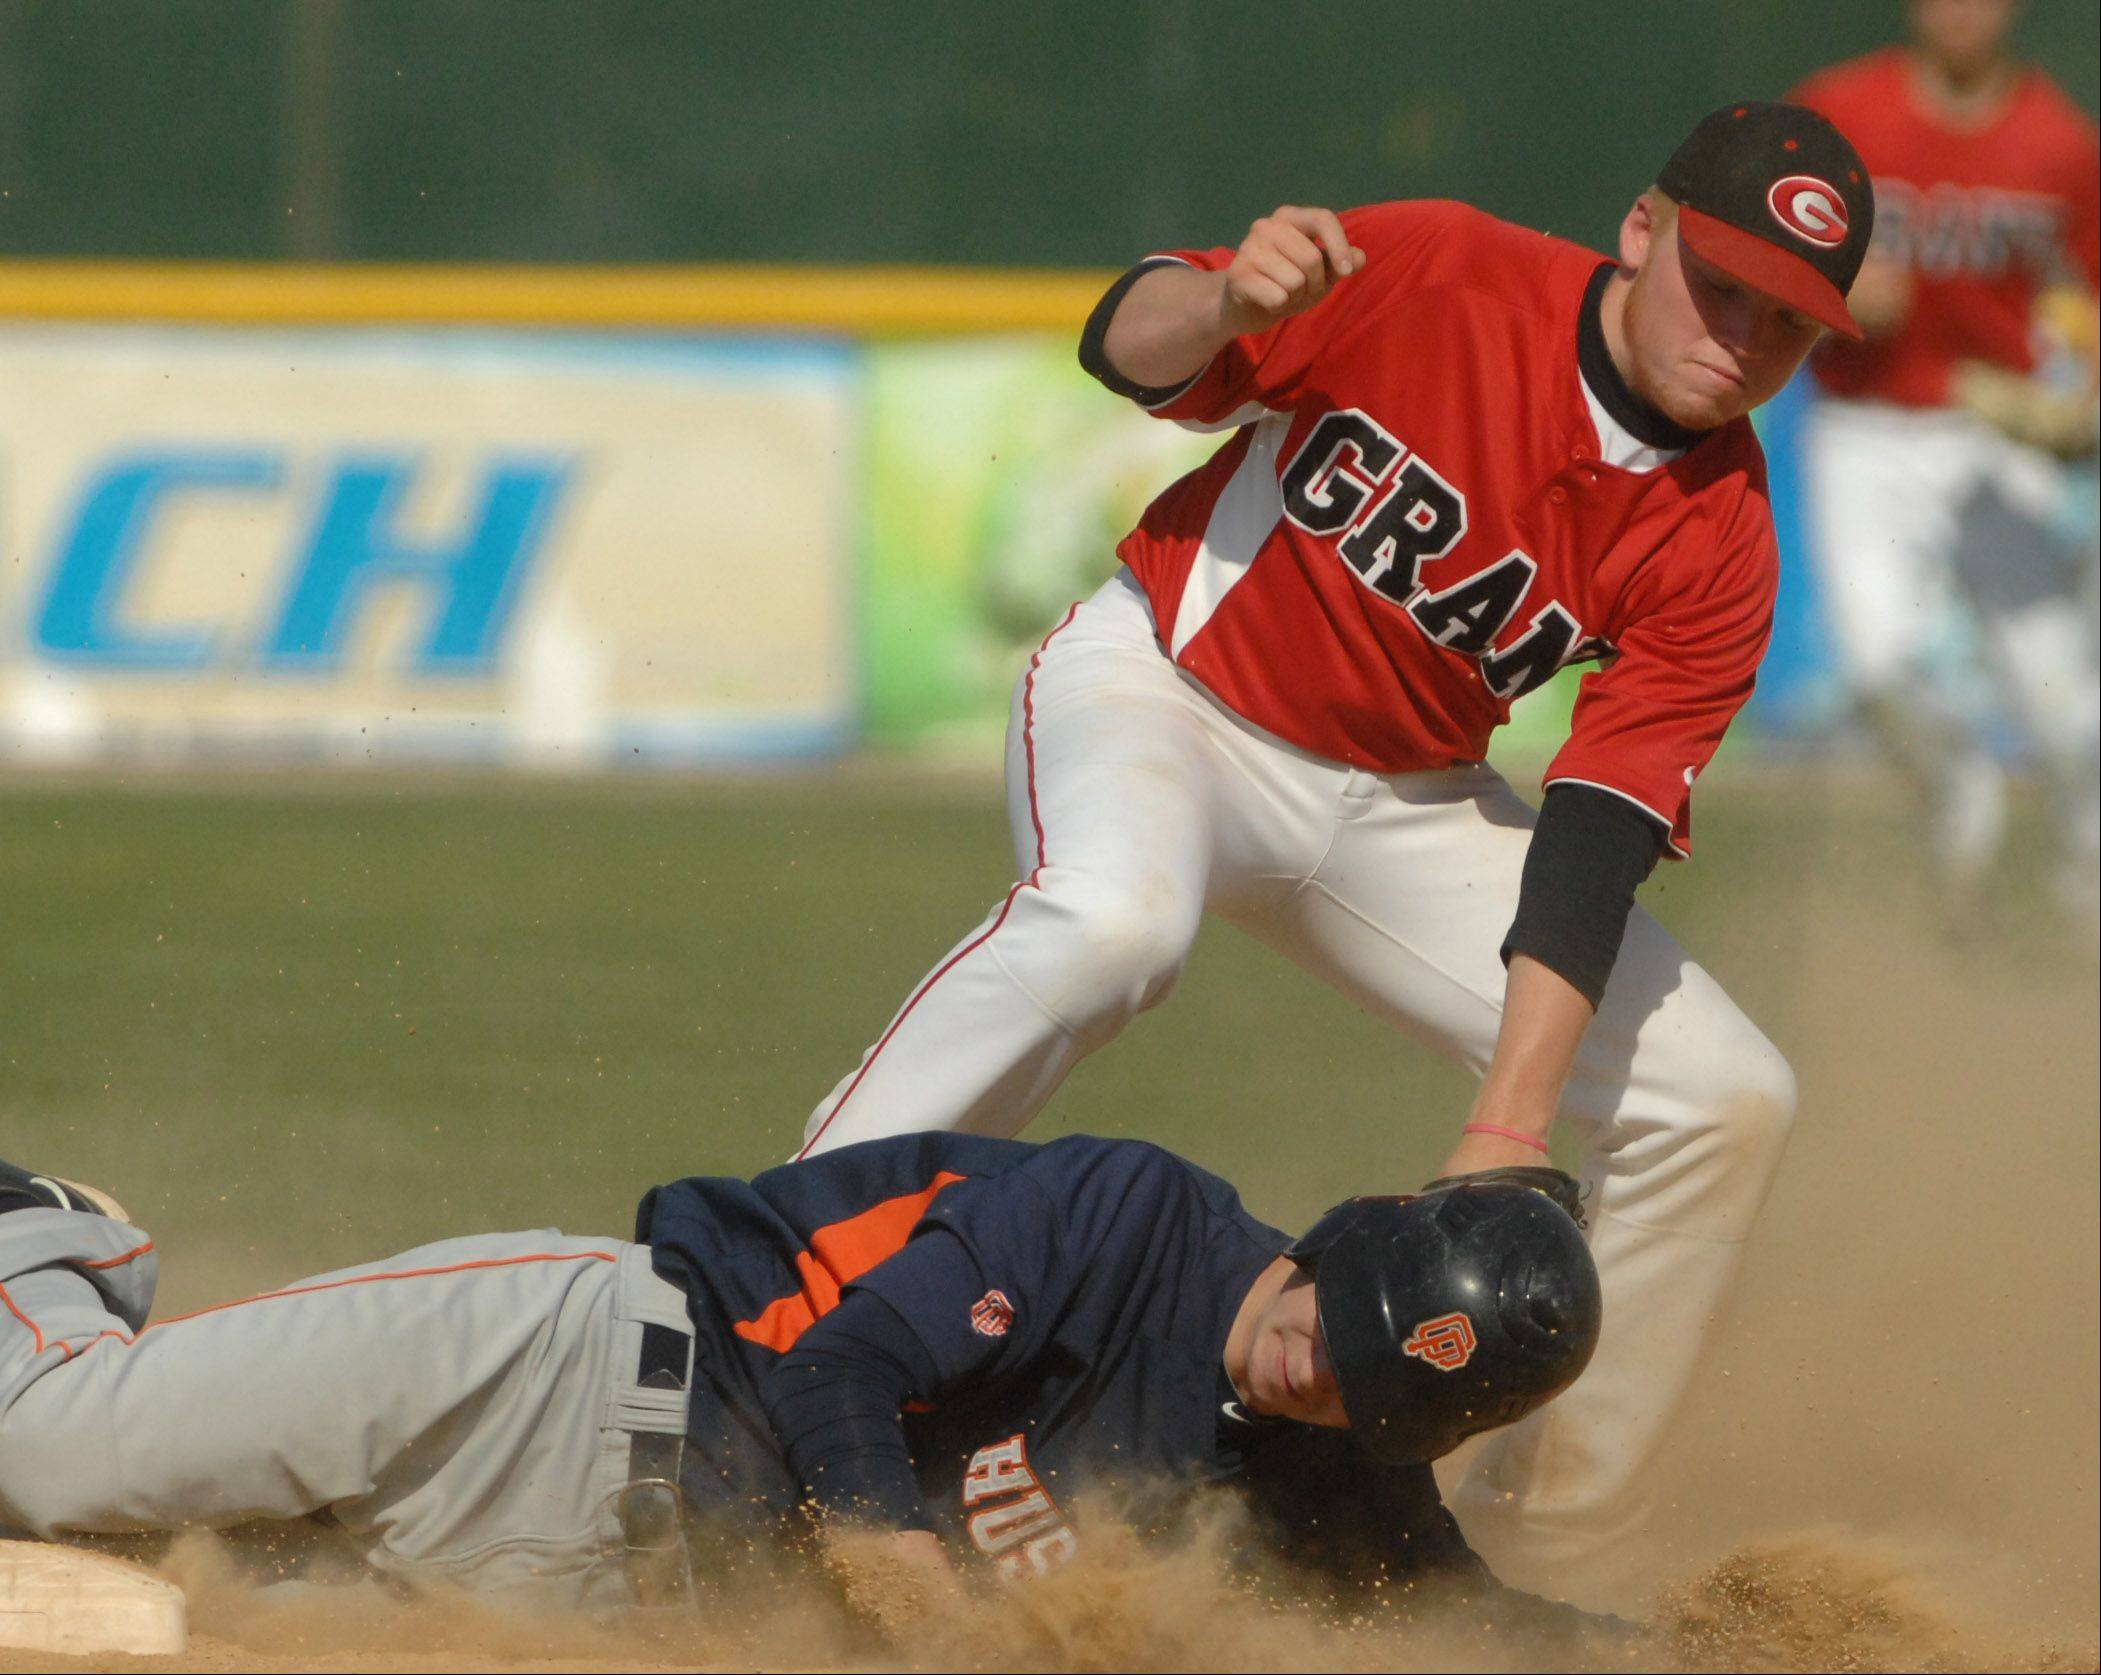 Jacob Adams of Grant puts the tag on Patrick Clifford of Oak Park-River Forest during Class 4A state semifinal play Friday at Silver Cross Field in Joliet. Clifford was safe on the play.